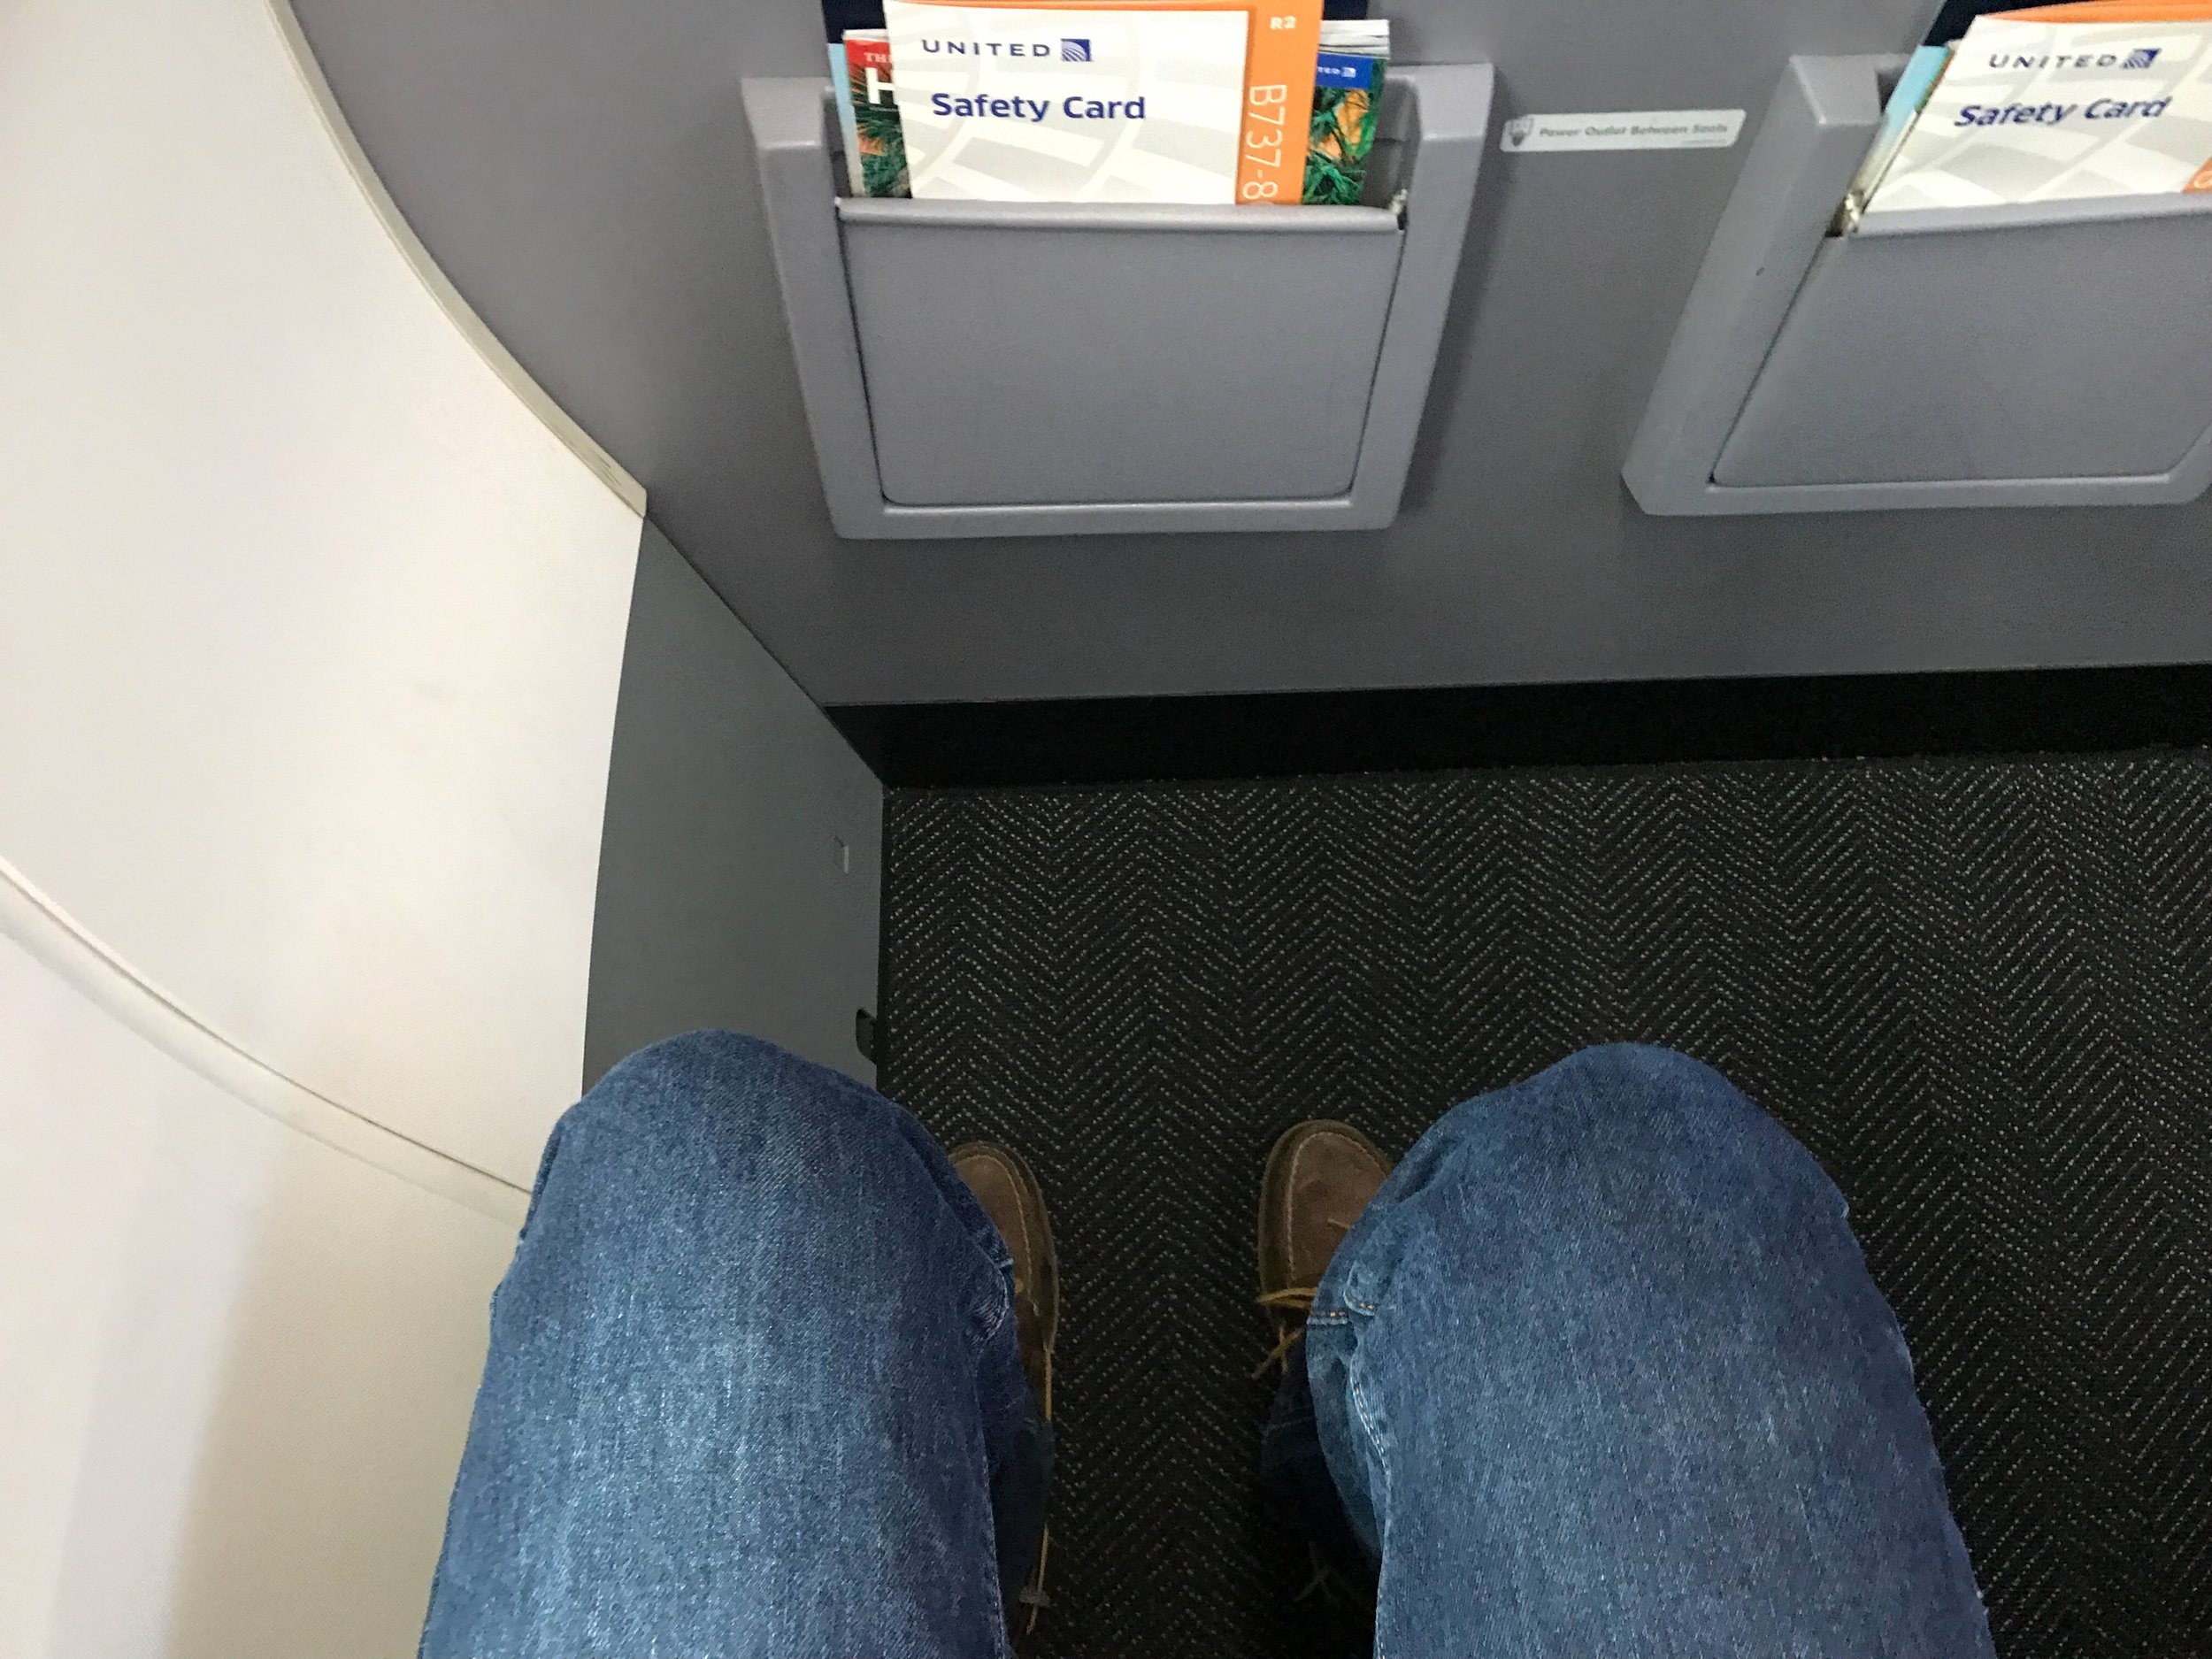 Despite the position of the bulkhead, there was ample legroom. More than any other row in Economy Plus.